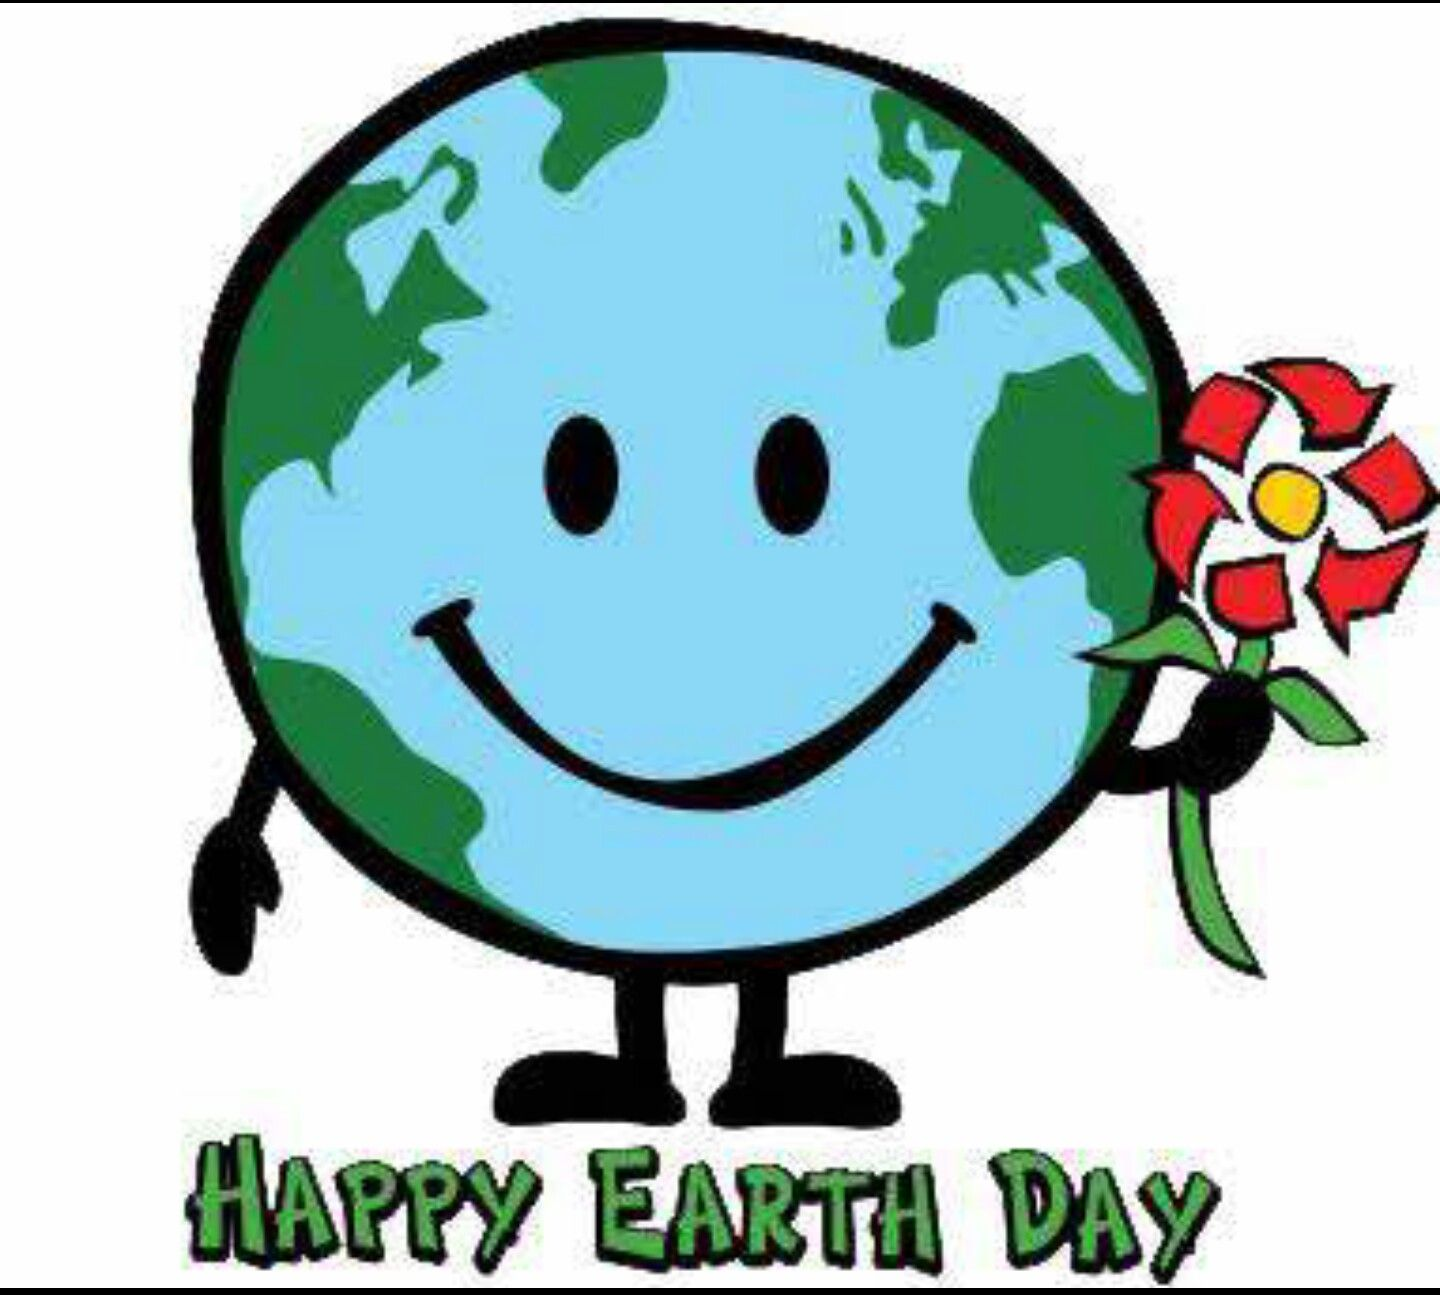 Earth day graphics clipart image royalty free Earth day | Ecologia | Earth day clip art, Earth clipart, Earth day ... image royalty free